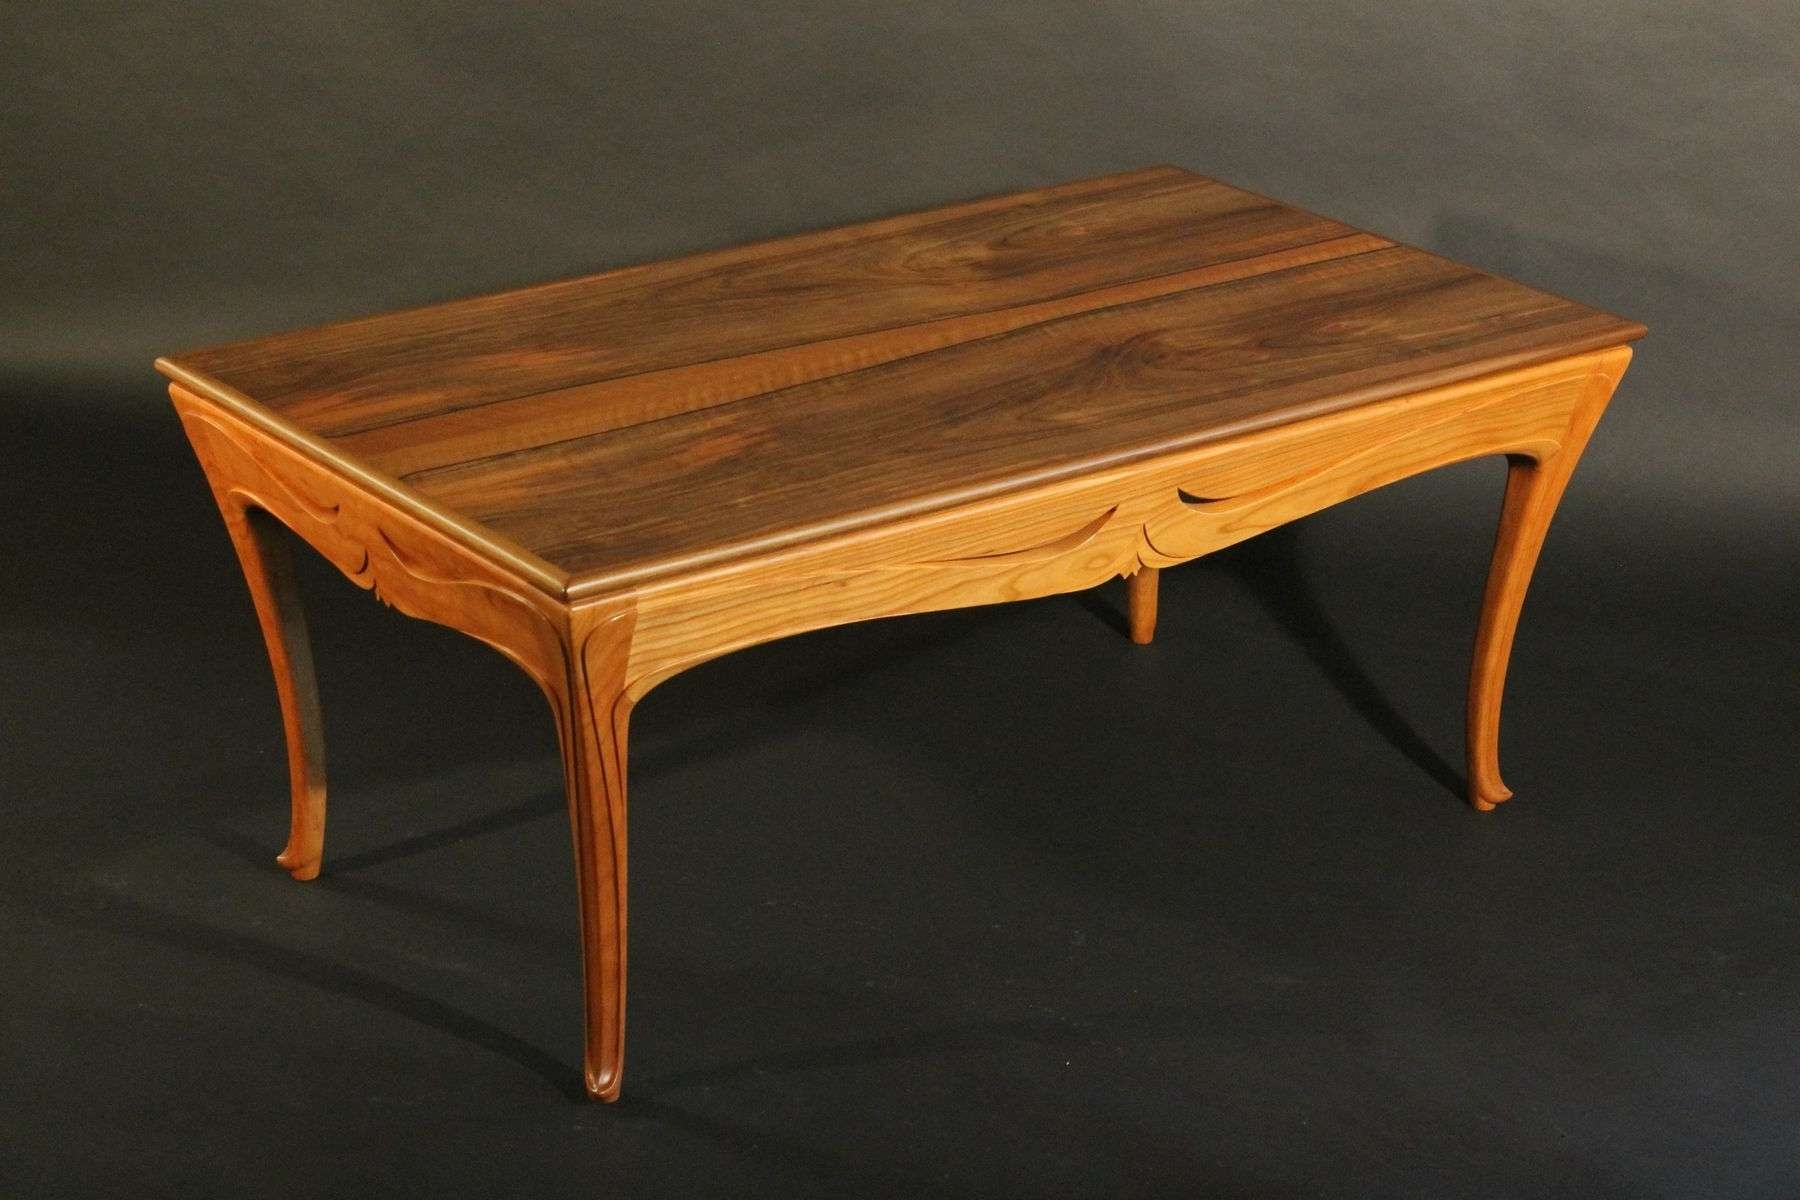 Custom Art Nouveau Coffee Tablej Rivers Furniture & Millwork Throughout Preferred Art Coffee Tables (View 3 of 20)